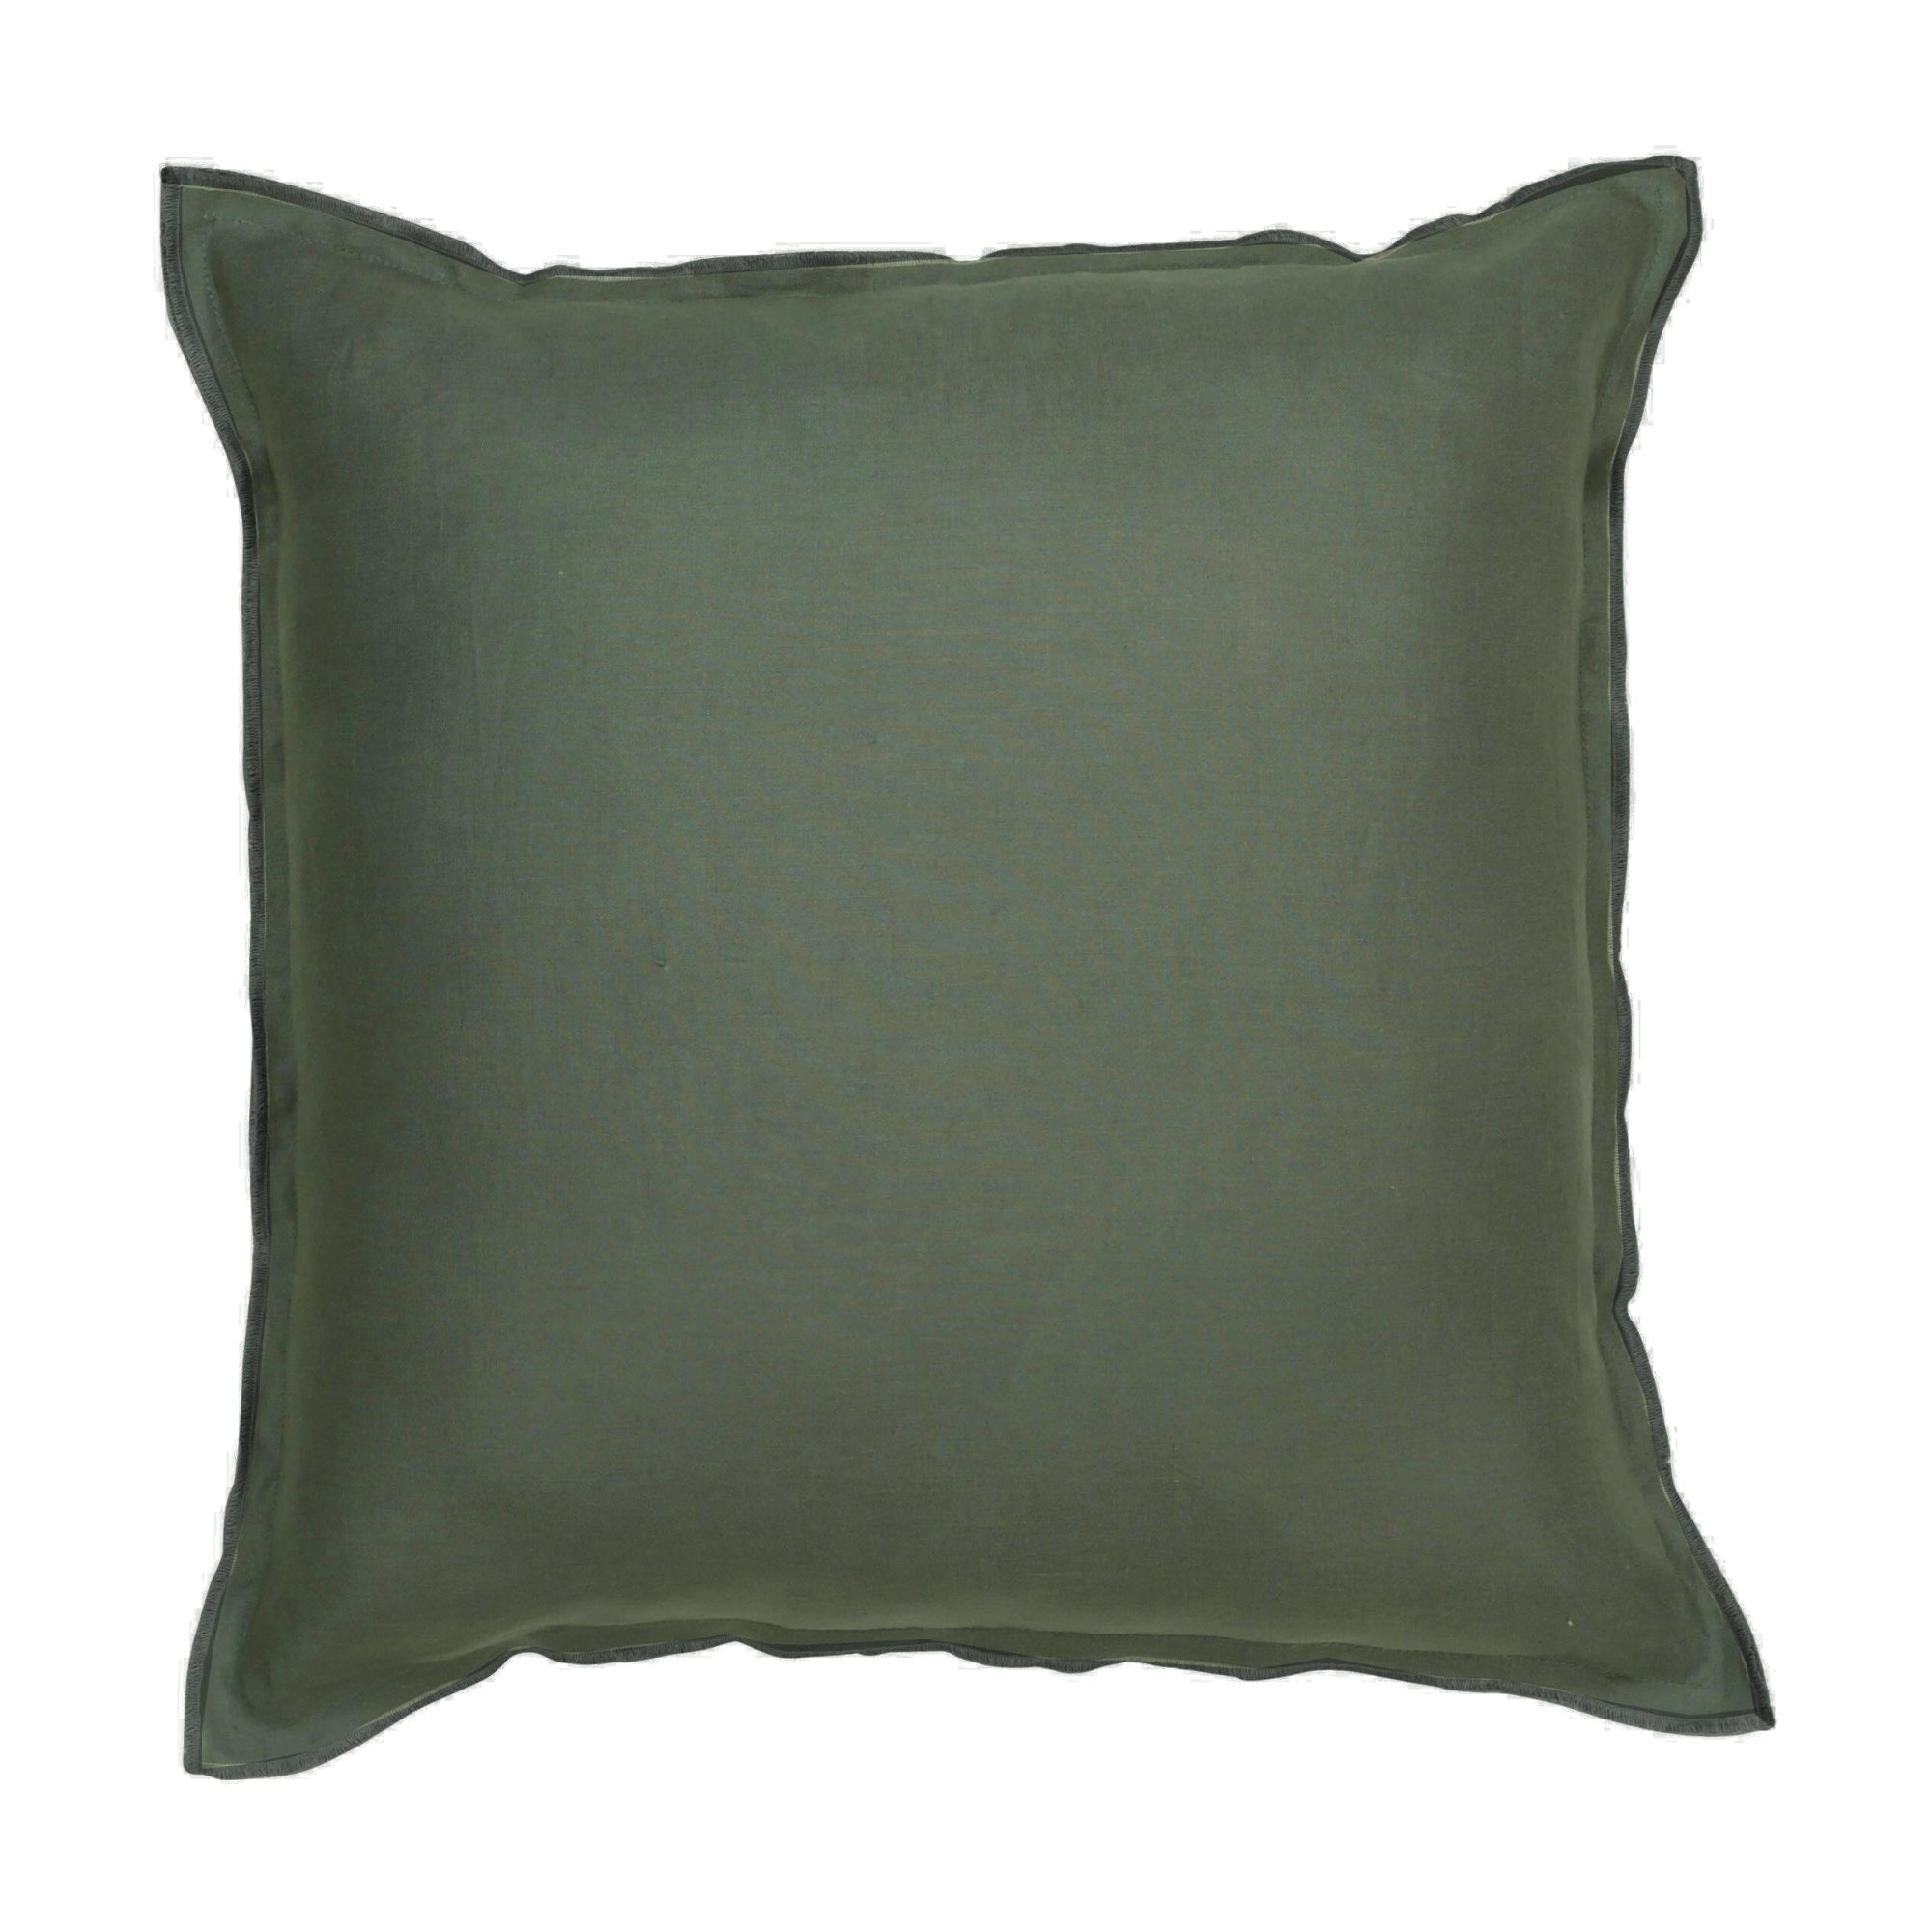 Alessa Linen Scatter Cushion, Khaki